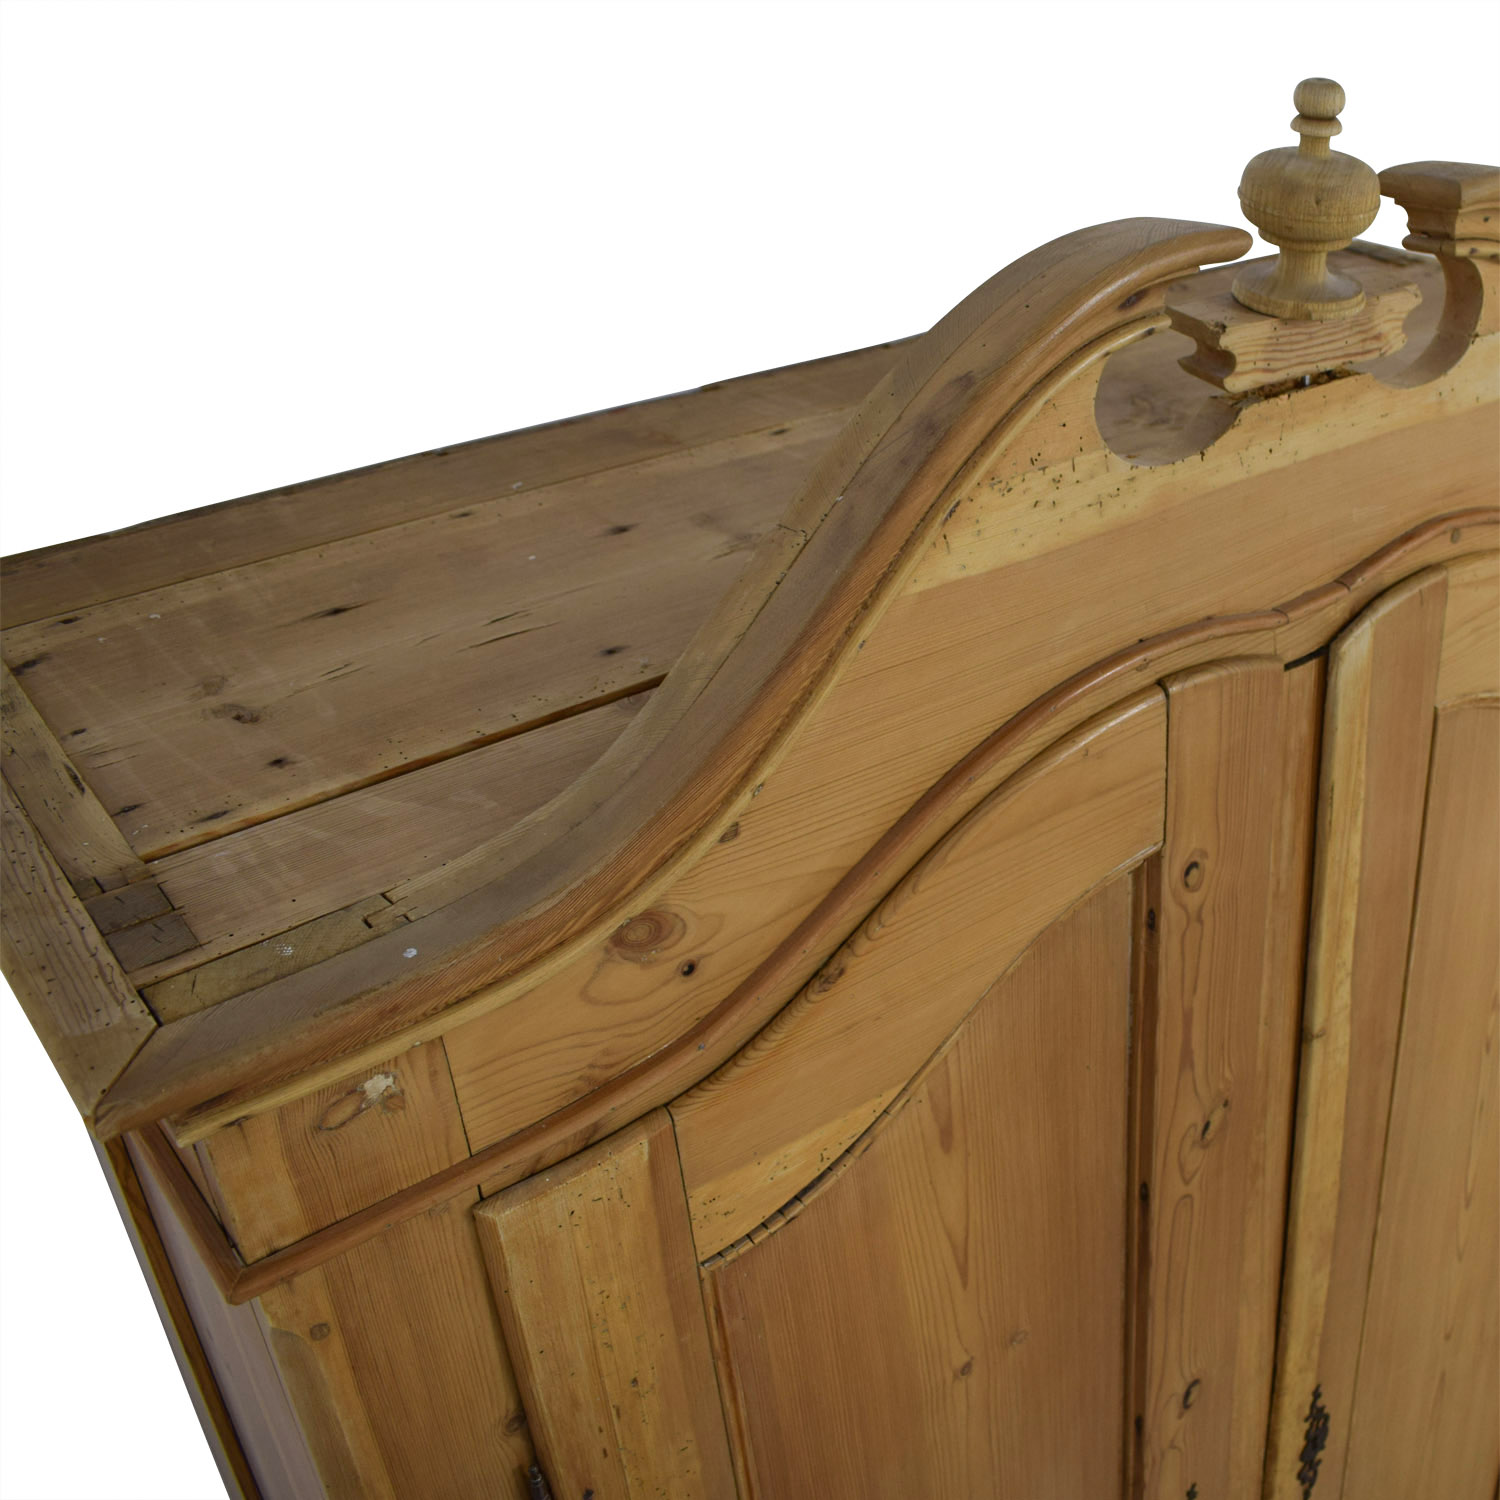 Antique Pine Armoire dimensions